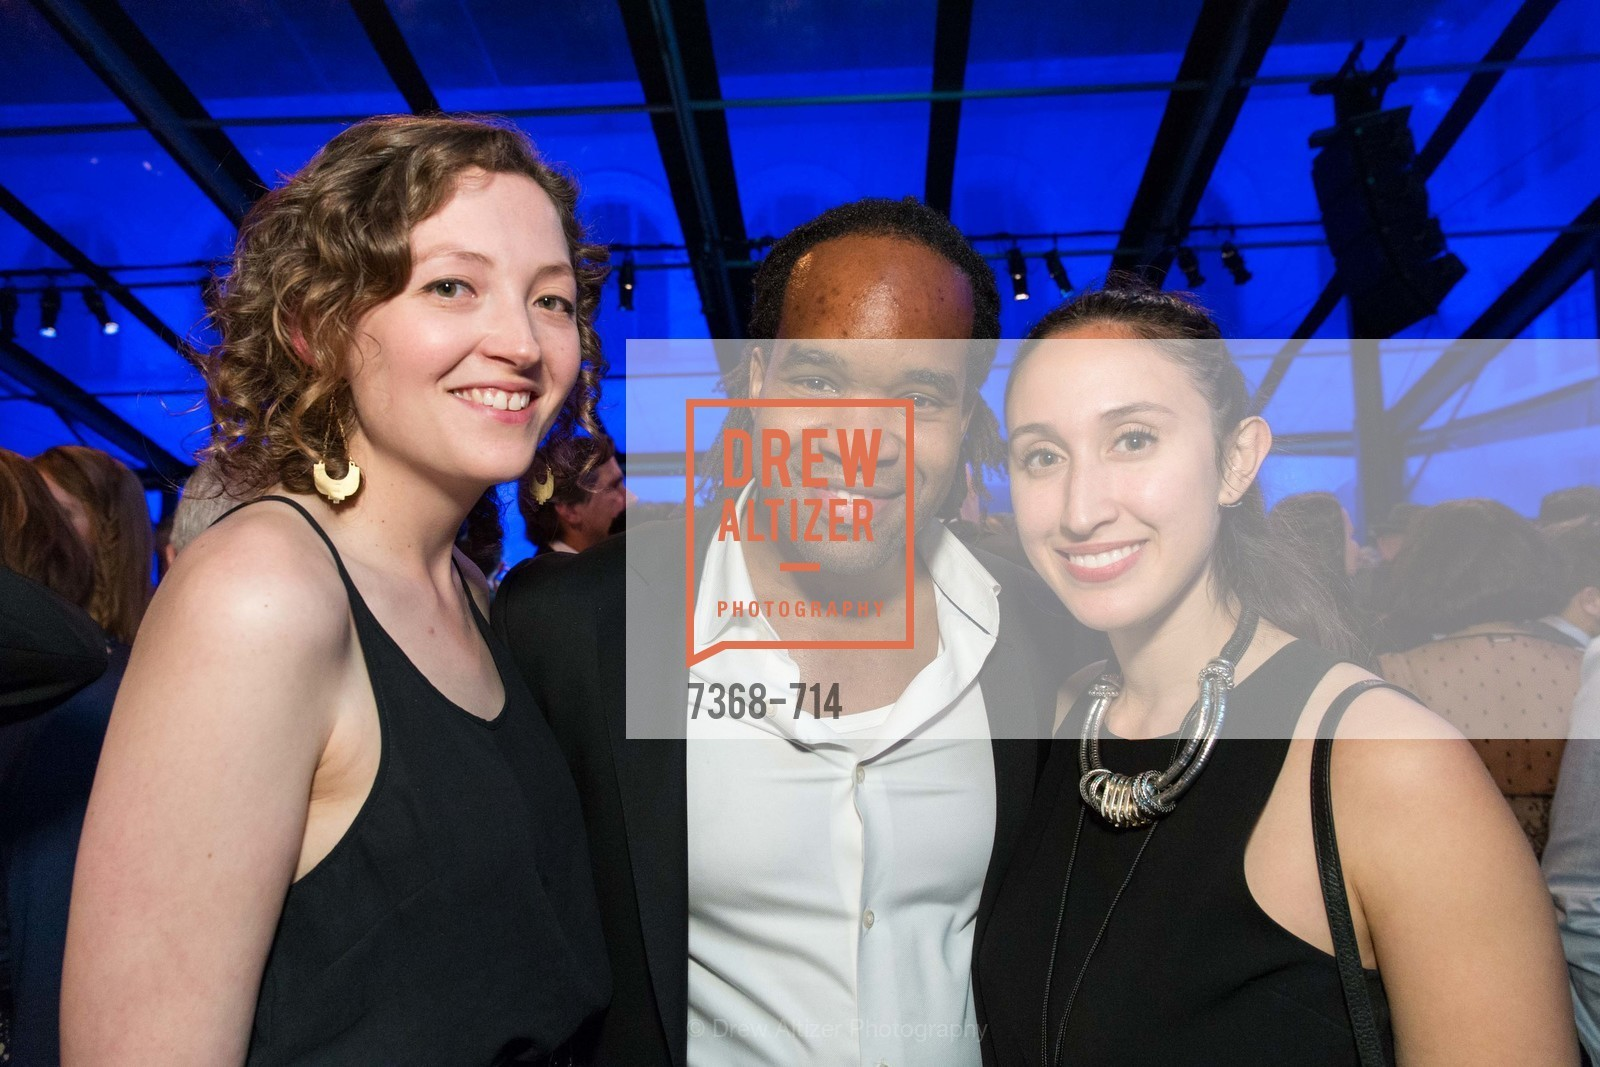 Victoria Hinshaw, Obed Galbarie, Stephanie Garces, SFJAZZ Gala 2015 Honors Joni Mitchell with Lifetime Achievement Award, US, May 9th, 2015,Drew Altizer, Drew Altizer Photography, full-service agency, private events, San Francisco photographer, photographer california